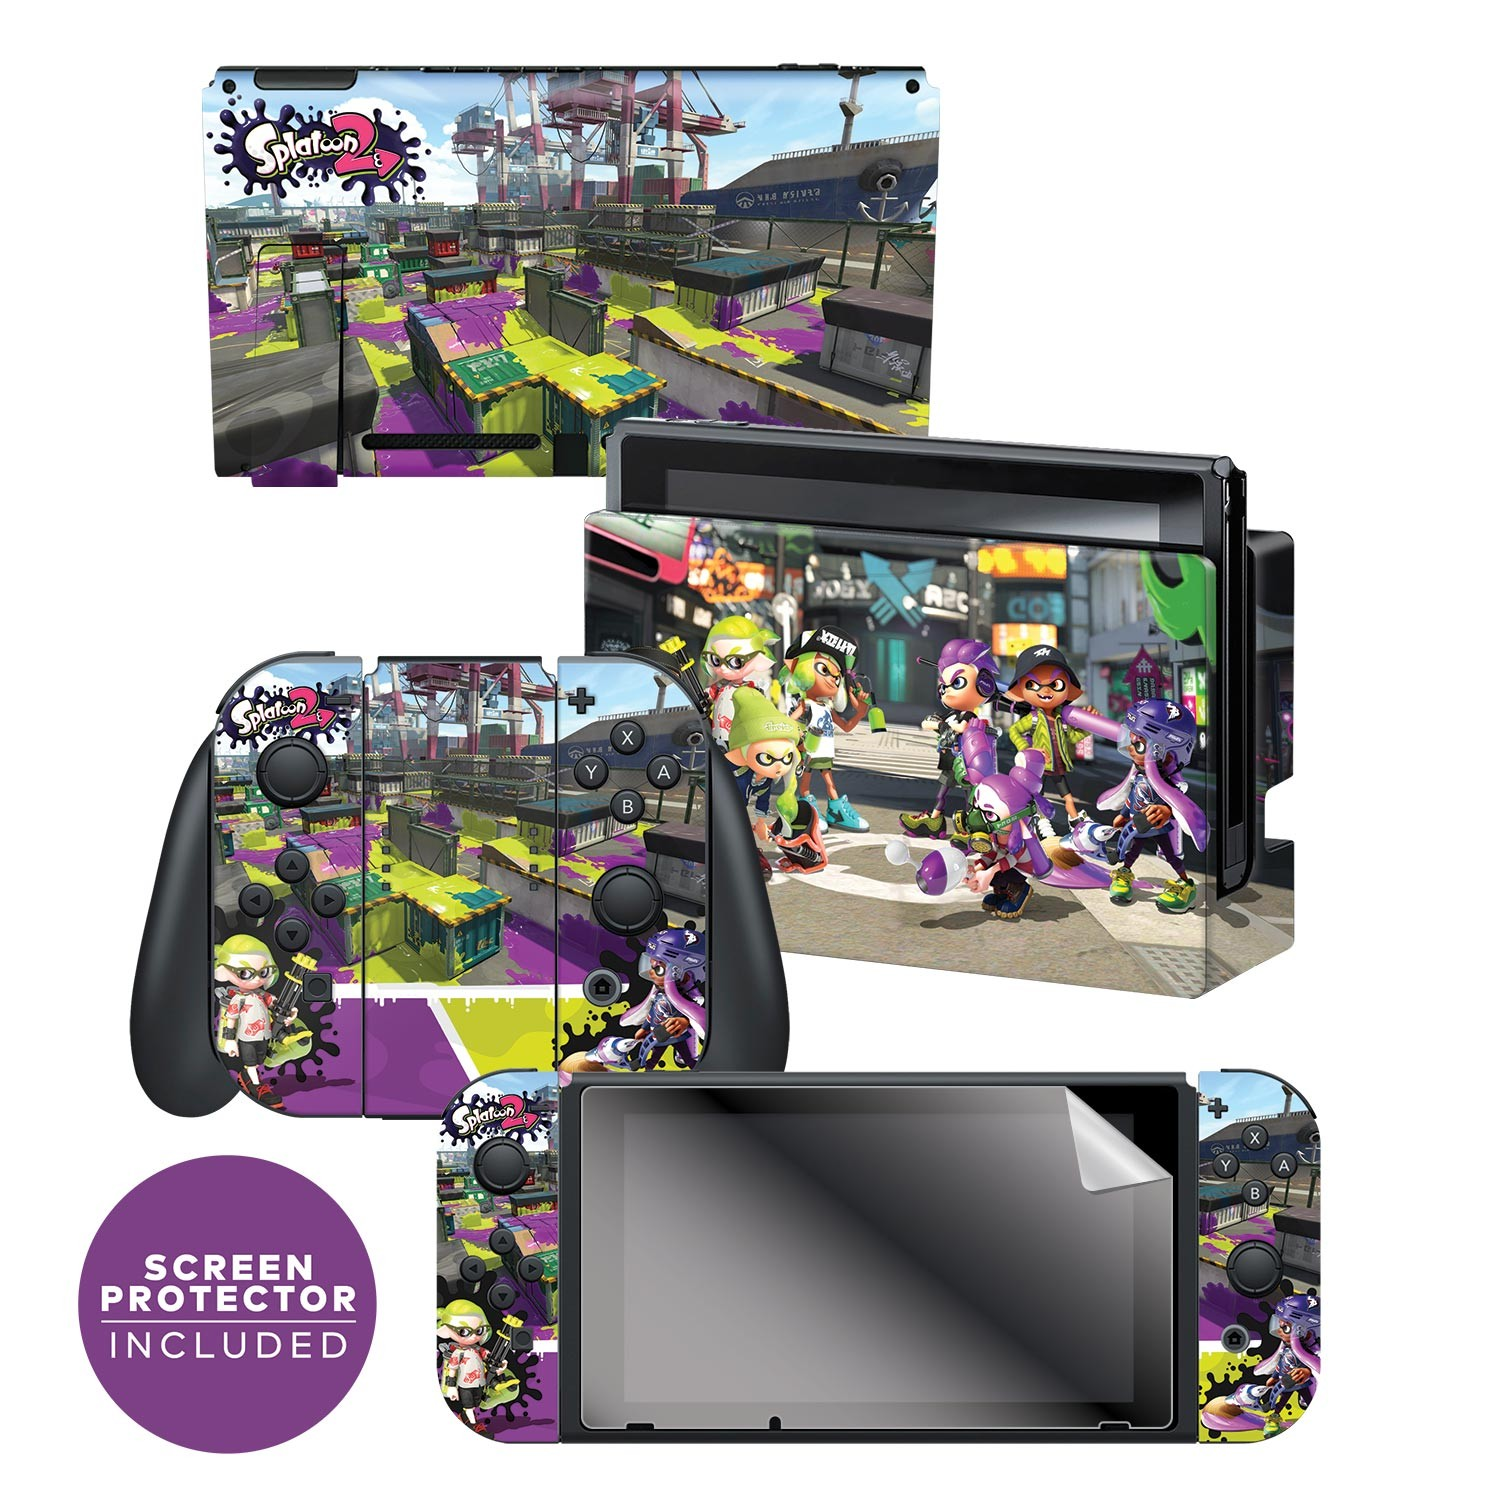 "Splatoon 2™ ""Vandals vs Artist""  Nintendo Switch™ Console skin + Dock Skin + Joy-Con™ skin +  Joy-Con™ Grip Skin + Screen Protector Bundle Assortment, Officially Licensed by Nintendo"